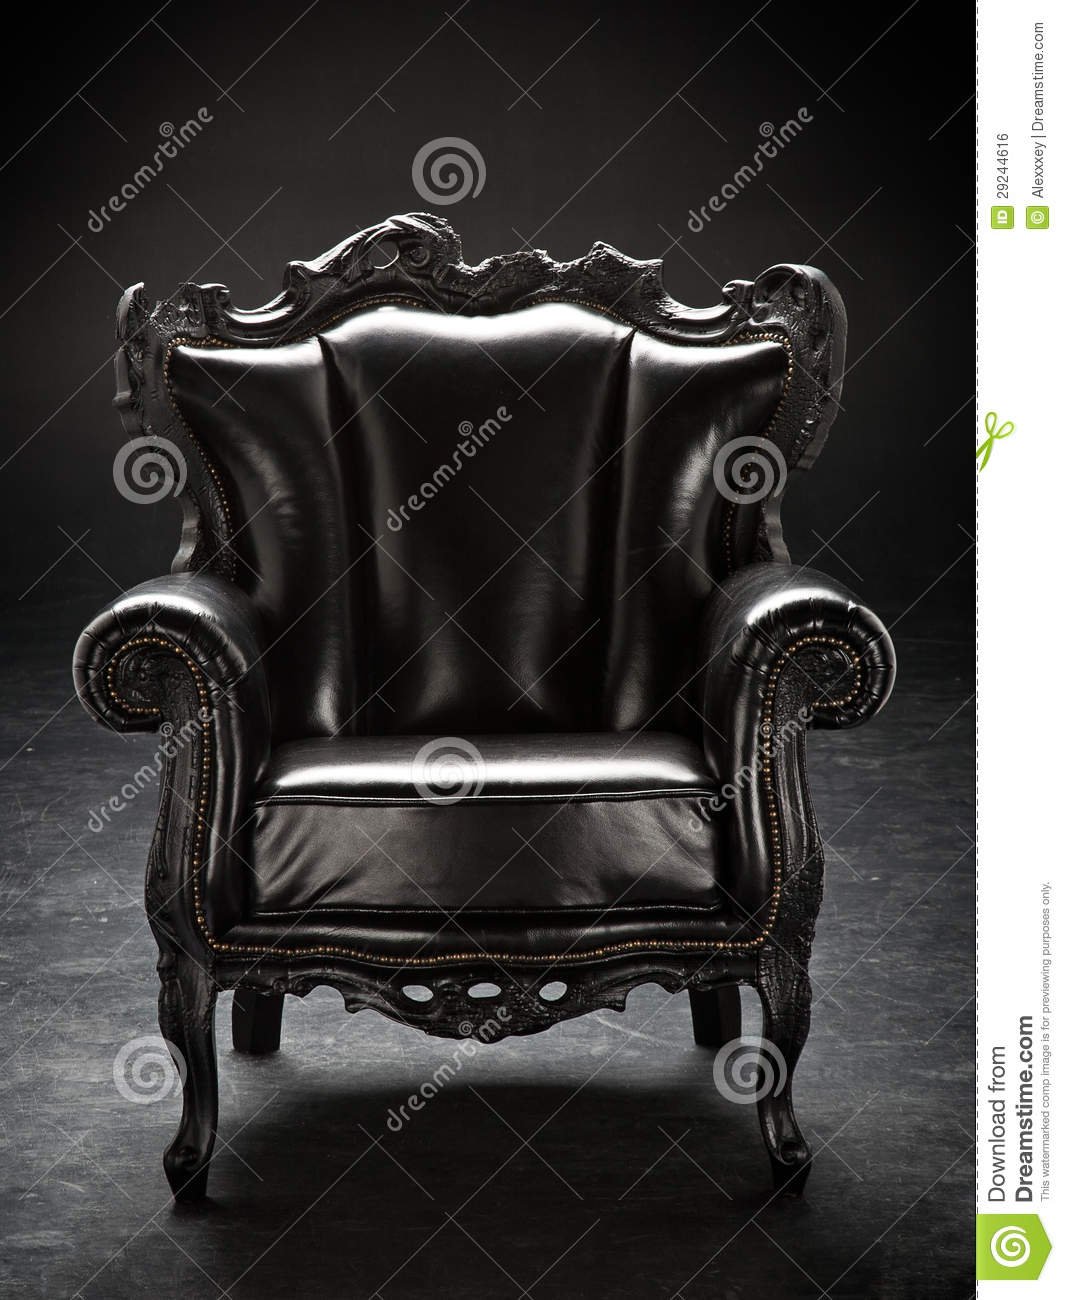 black throne chair kneeling design old upholstered in leather royalty free stock